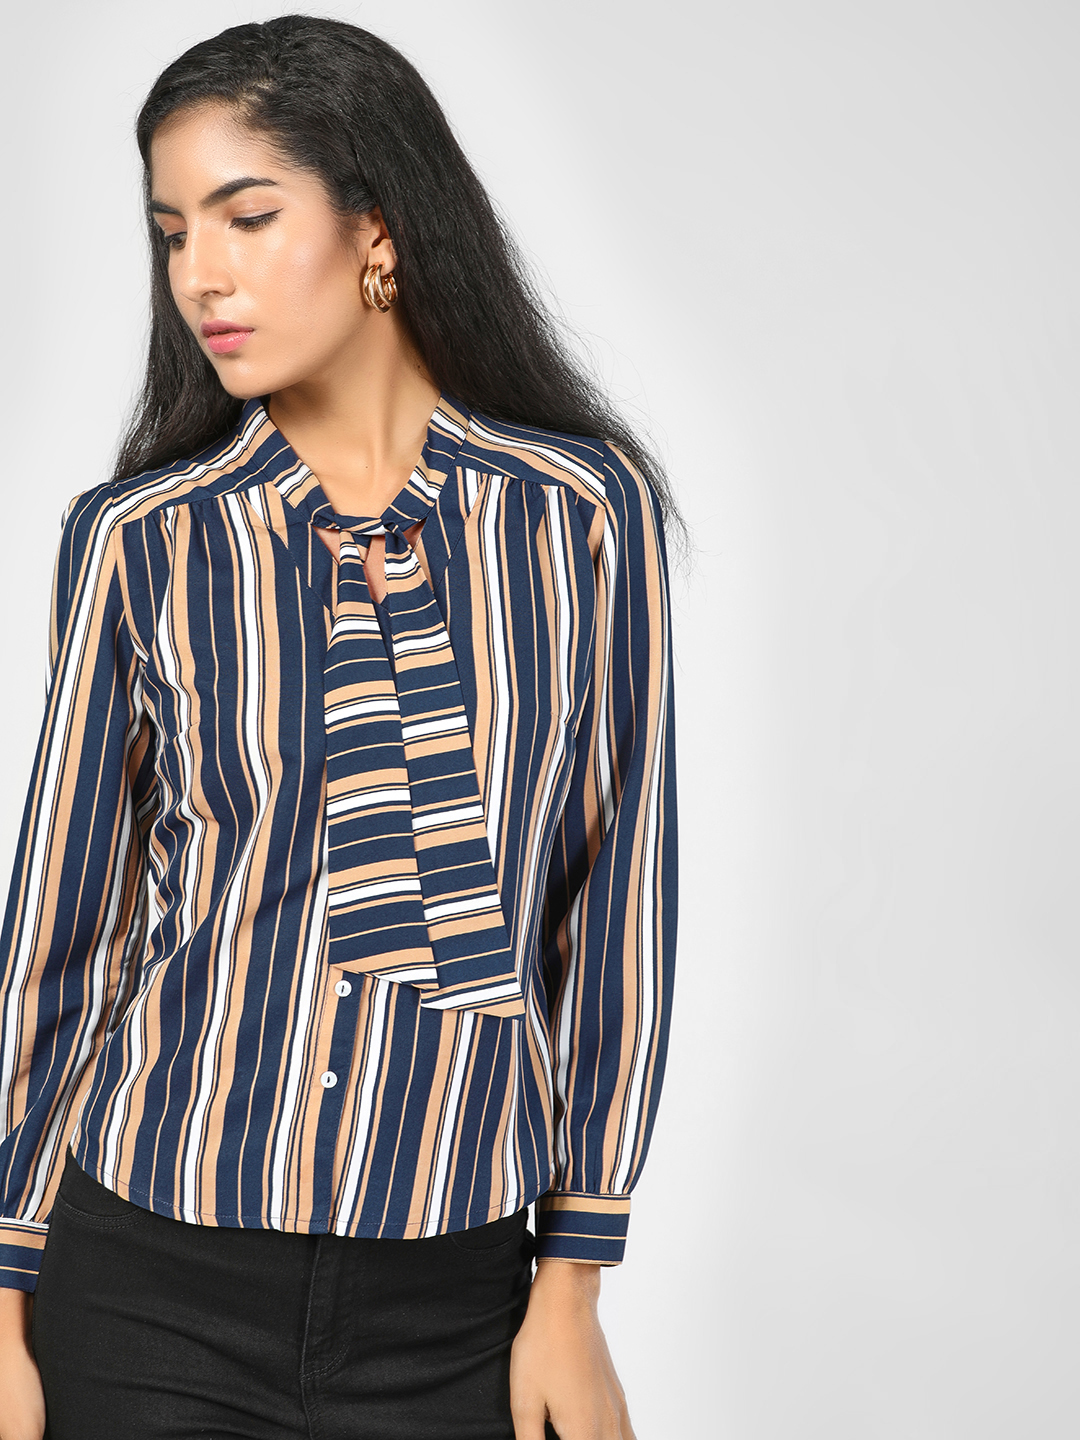 SCULLERS FOR HER Blue Striped Front Tie Up Shirt 1